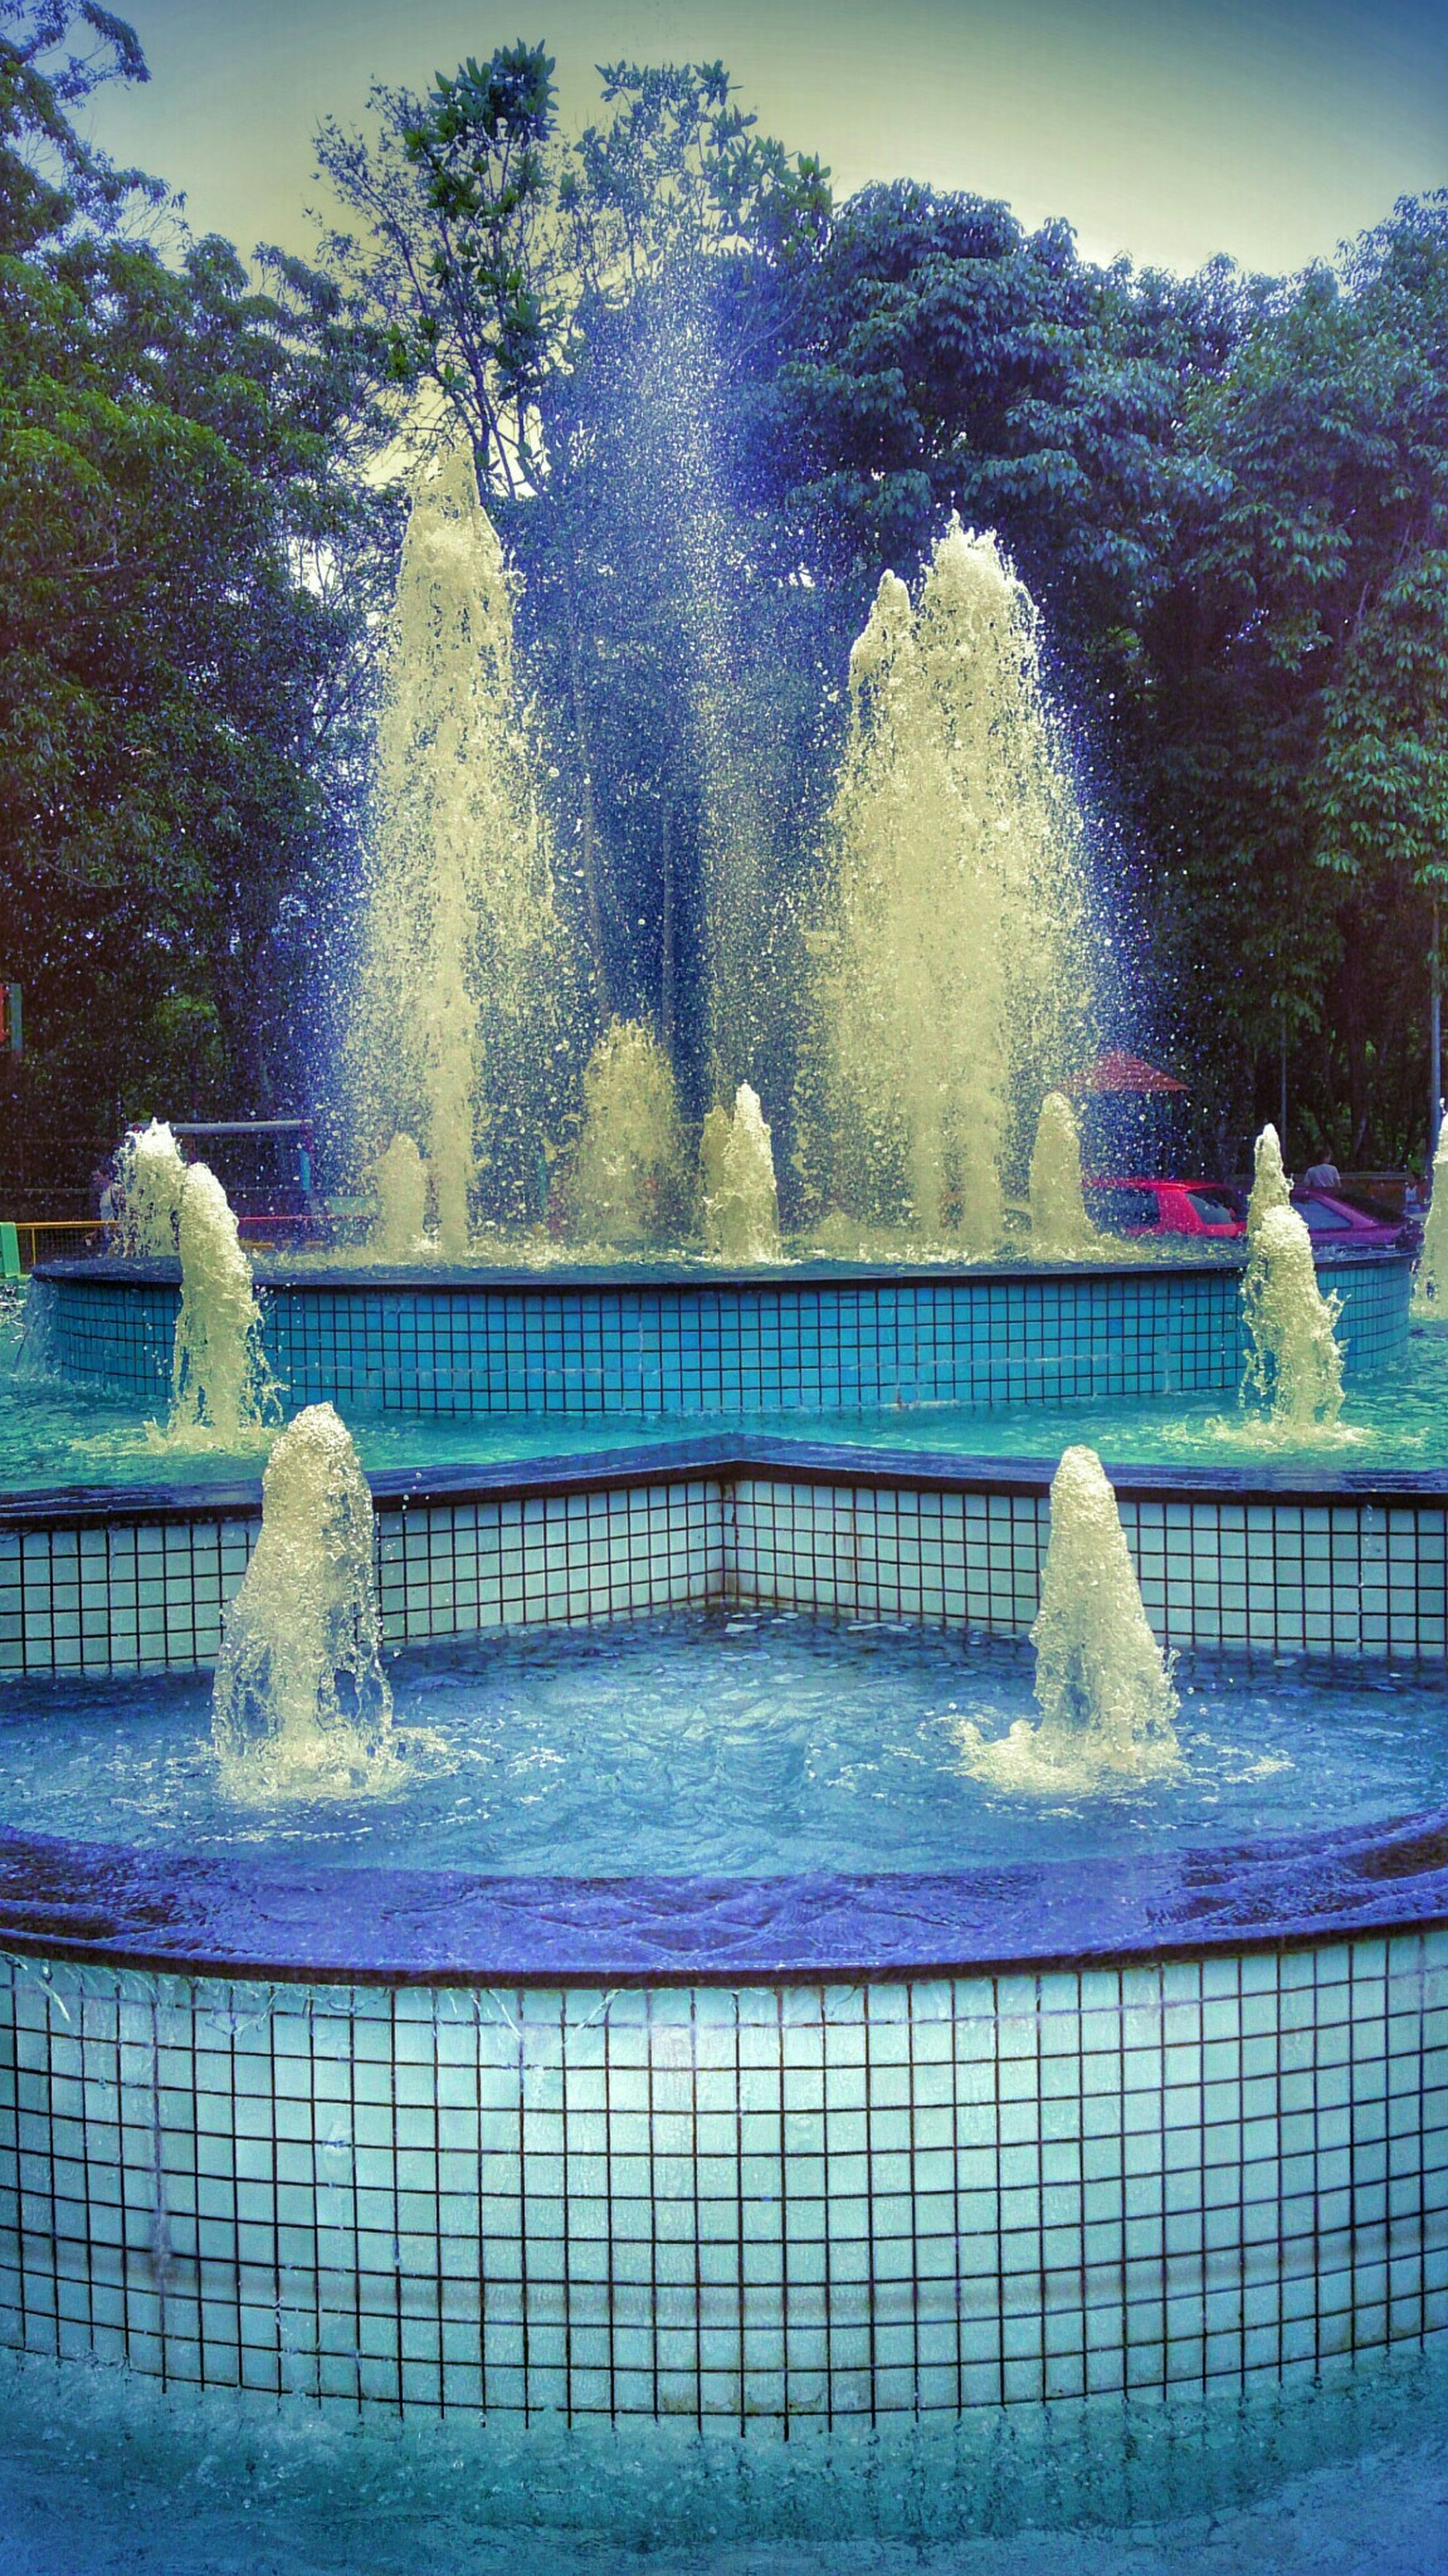 water, fountain, spraying, motion, splashing, blue, railing, long exposure, built structure, swimming pool, statue, flowing water, sculpture, tree, waterfall, architecture, art, art and craft, creativity